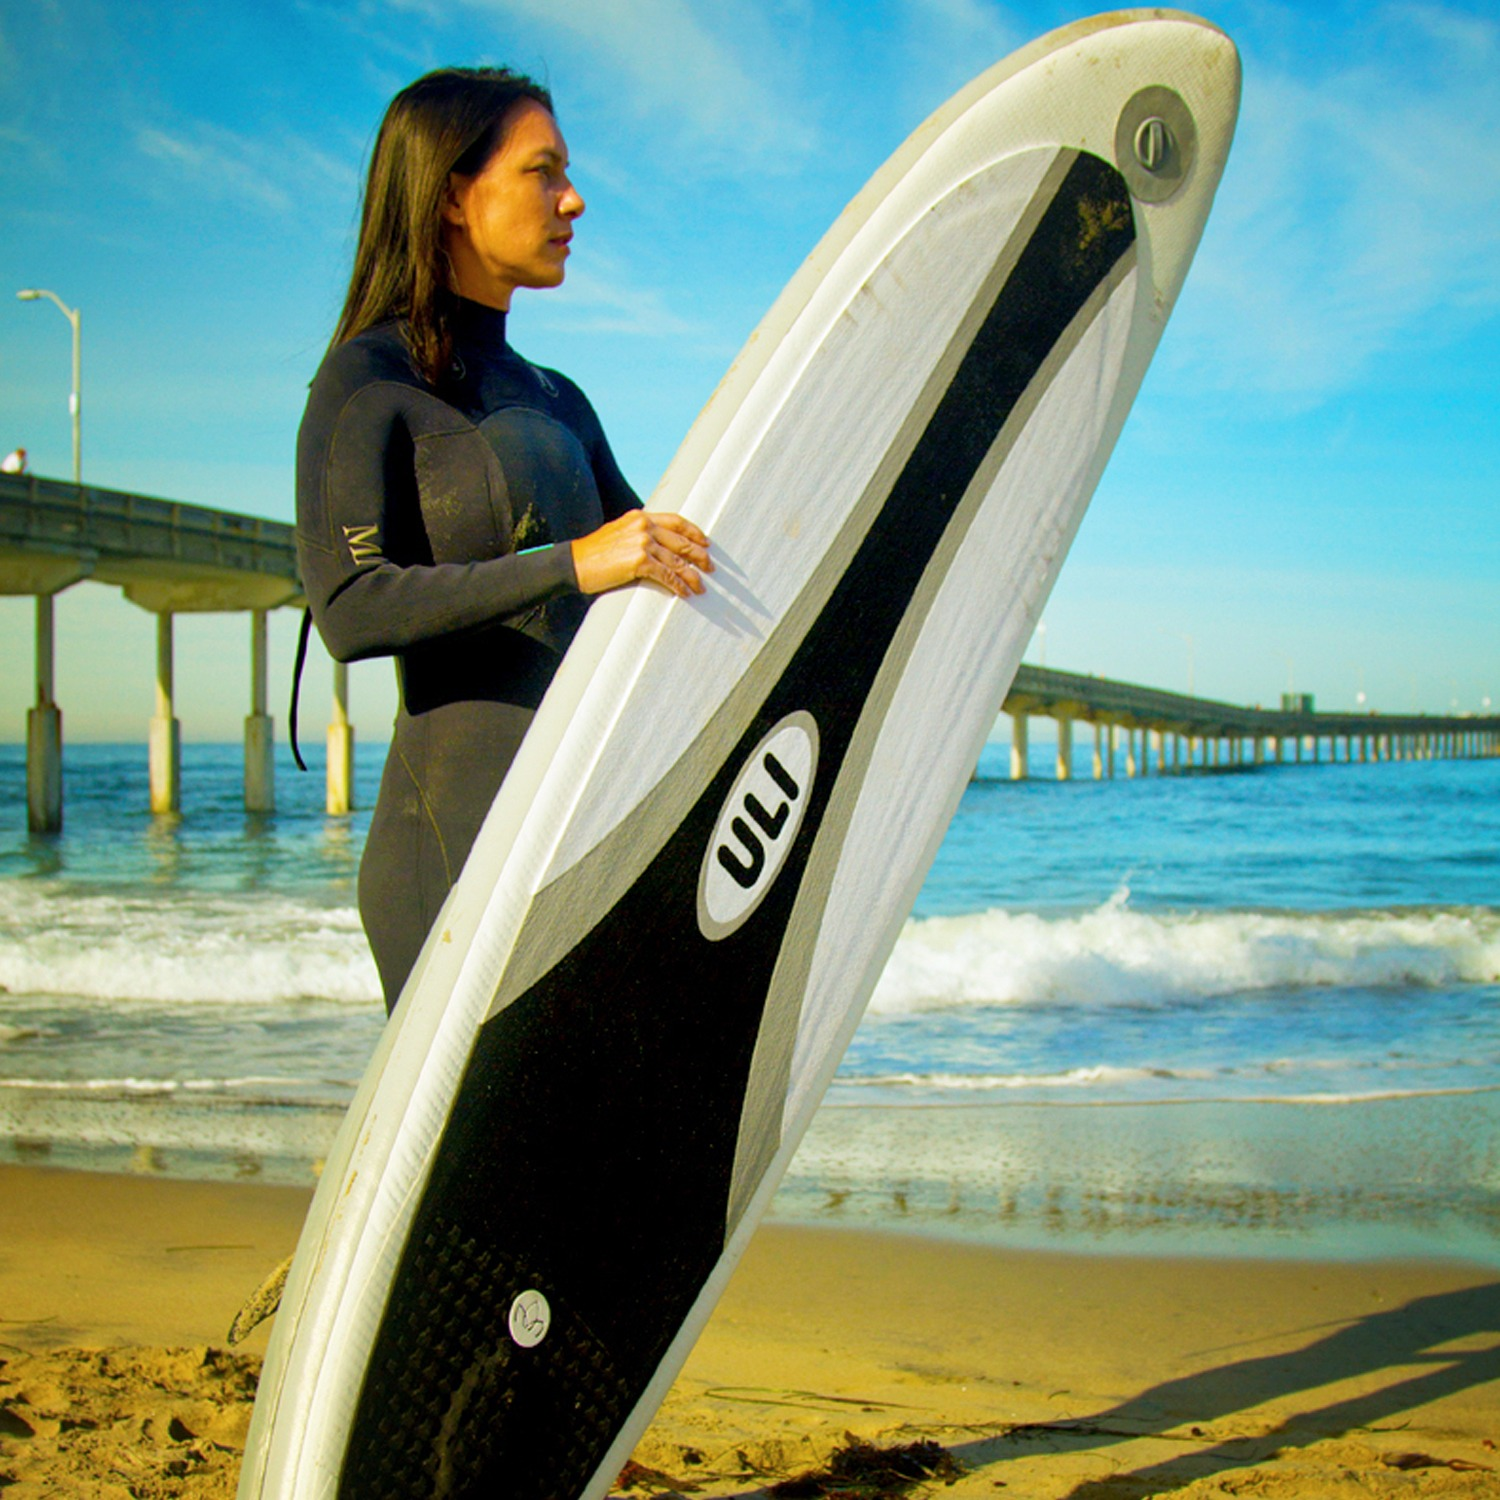 ULI Inflatable Boards Commercial